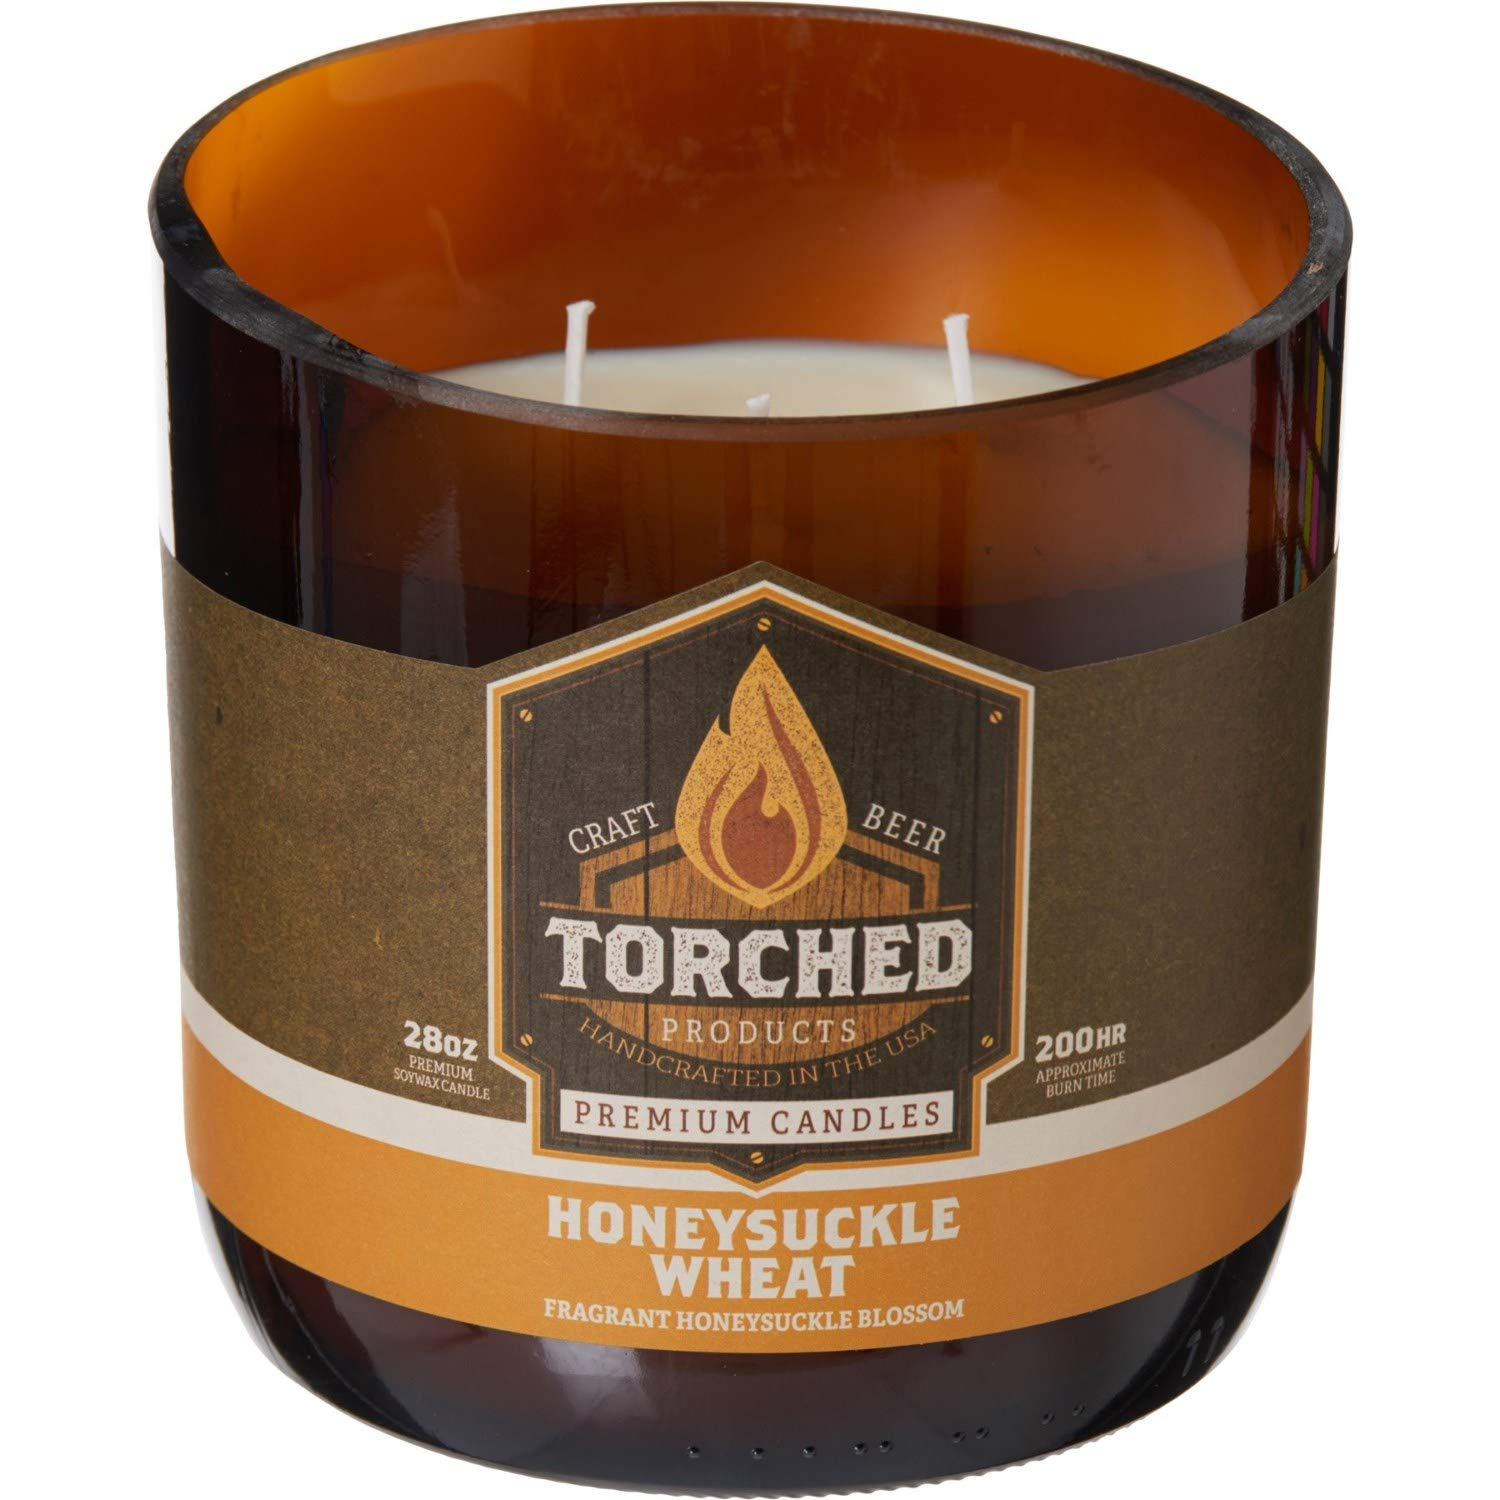 Growler Torched Honeysuckle Wheat Growler Candle - 3-Wick, 28 oz.